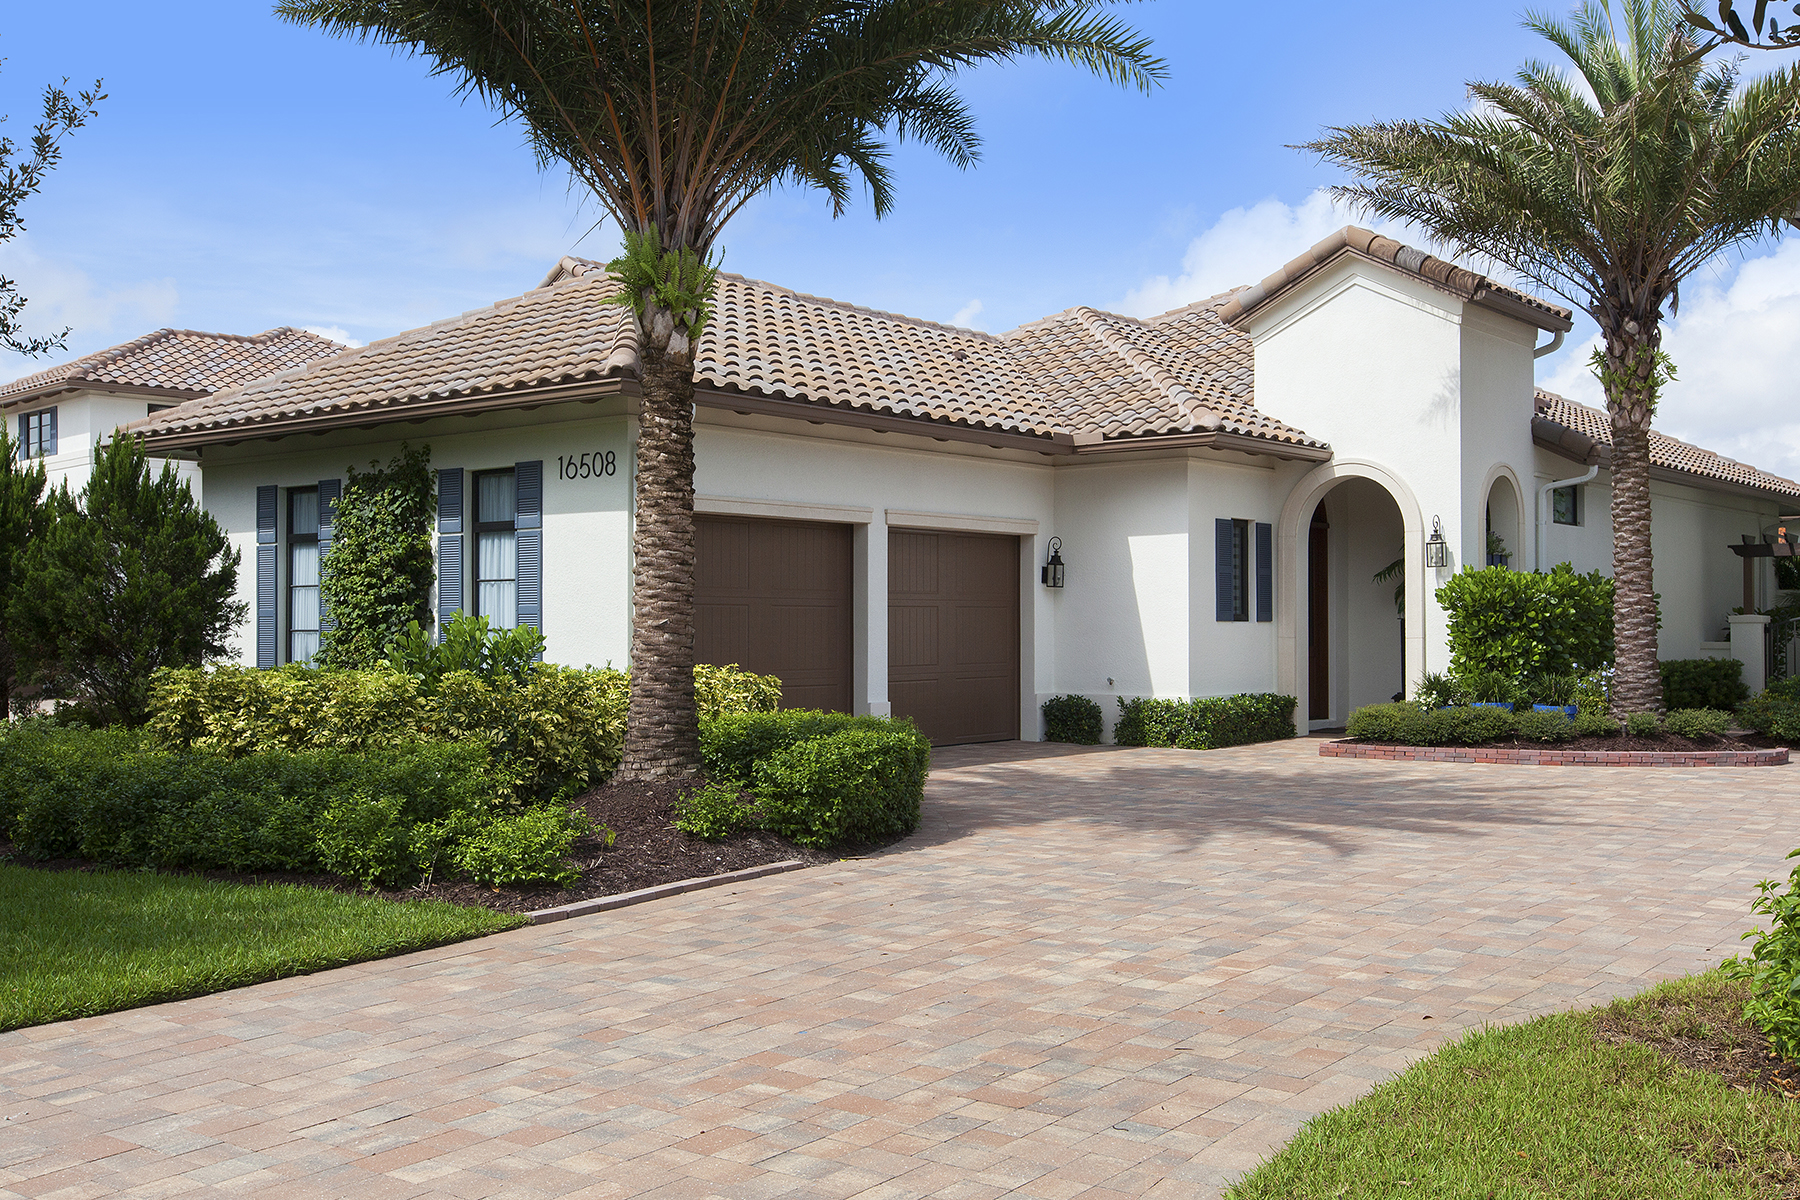 Single Family Home for Sale at TALIS PARK 16508 Talis Park Dr Naples, Florida, 34110 United States